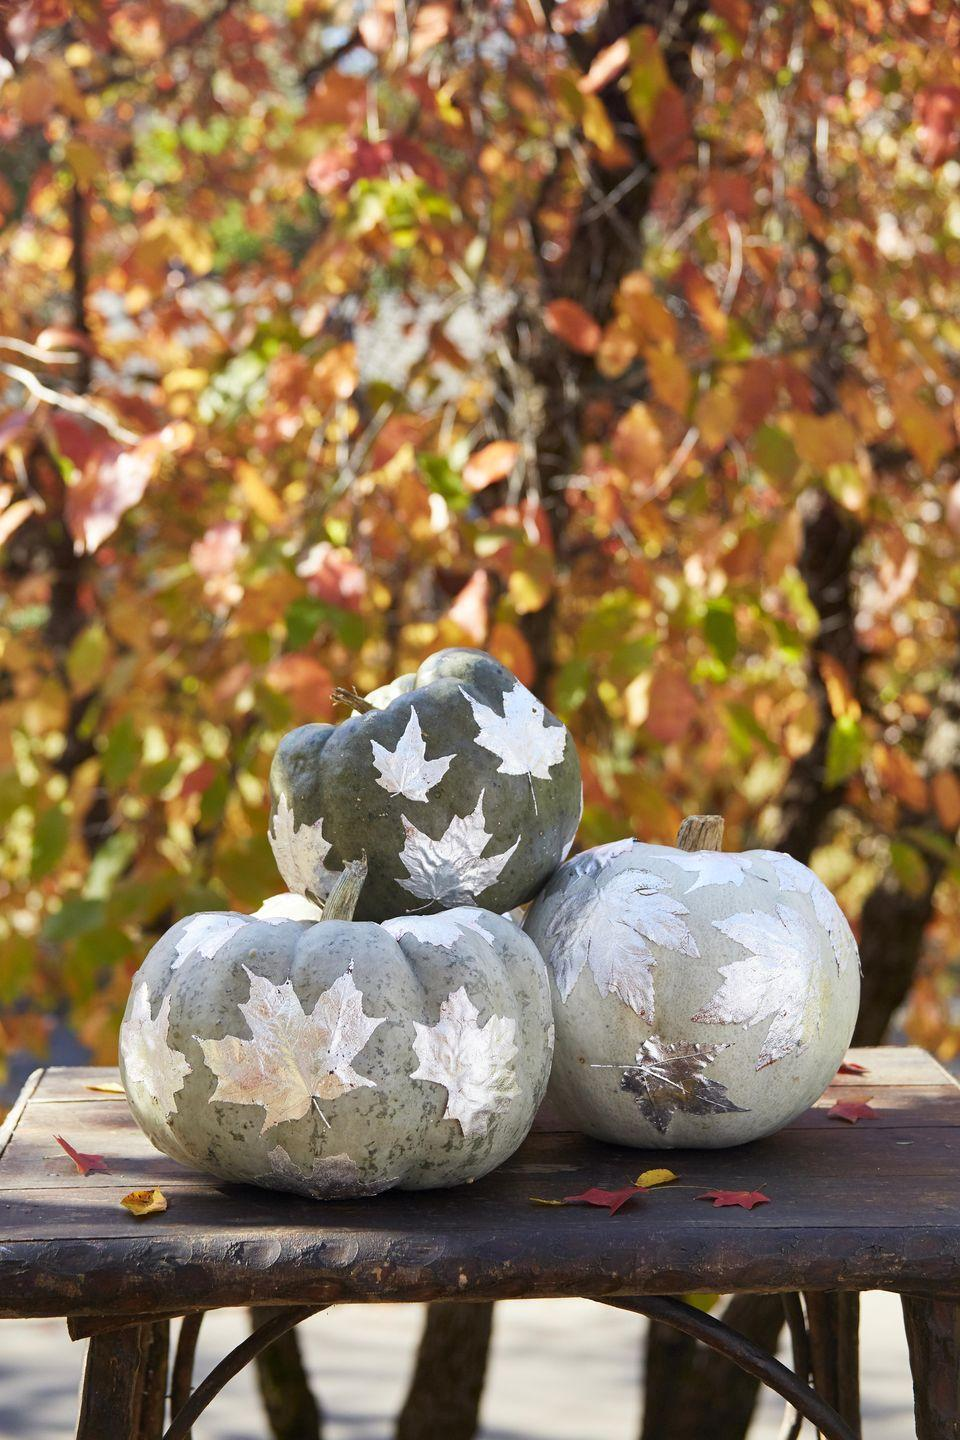 <p>These DIY shimmering leaves look great on blue-hued or green pumpkins such as Jarrahdale, Blue Doll, Blue Moon, and Fairytale.</p><p><strong>Make the pumpkins:</strong> Attach silver leaf with sizing to one side of fake or real leaves (alternatively, you can spray paint leaves silver). Once dry, spray adhesive spray on the back of the leaves and attach to pumpkins.</p>